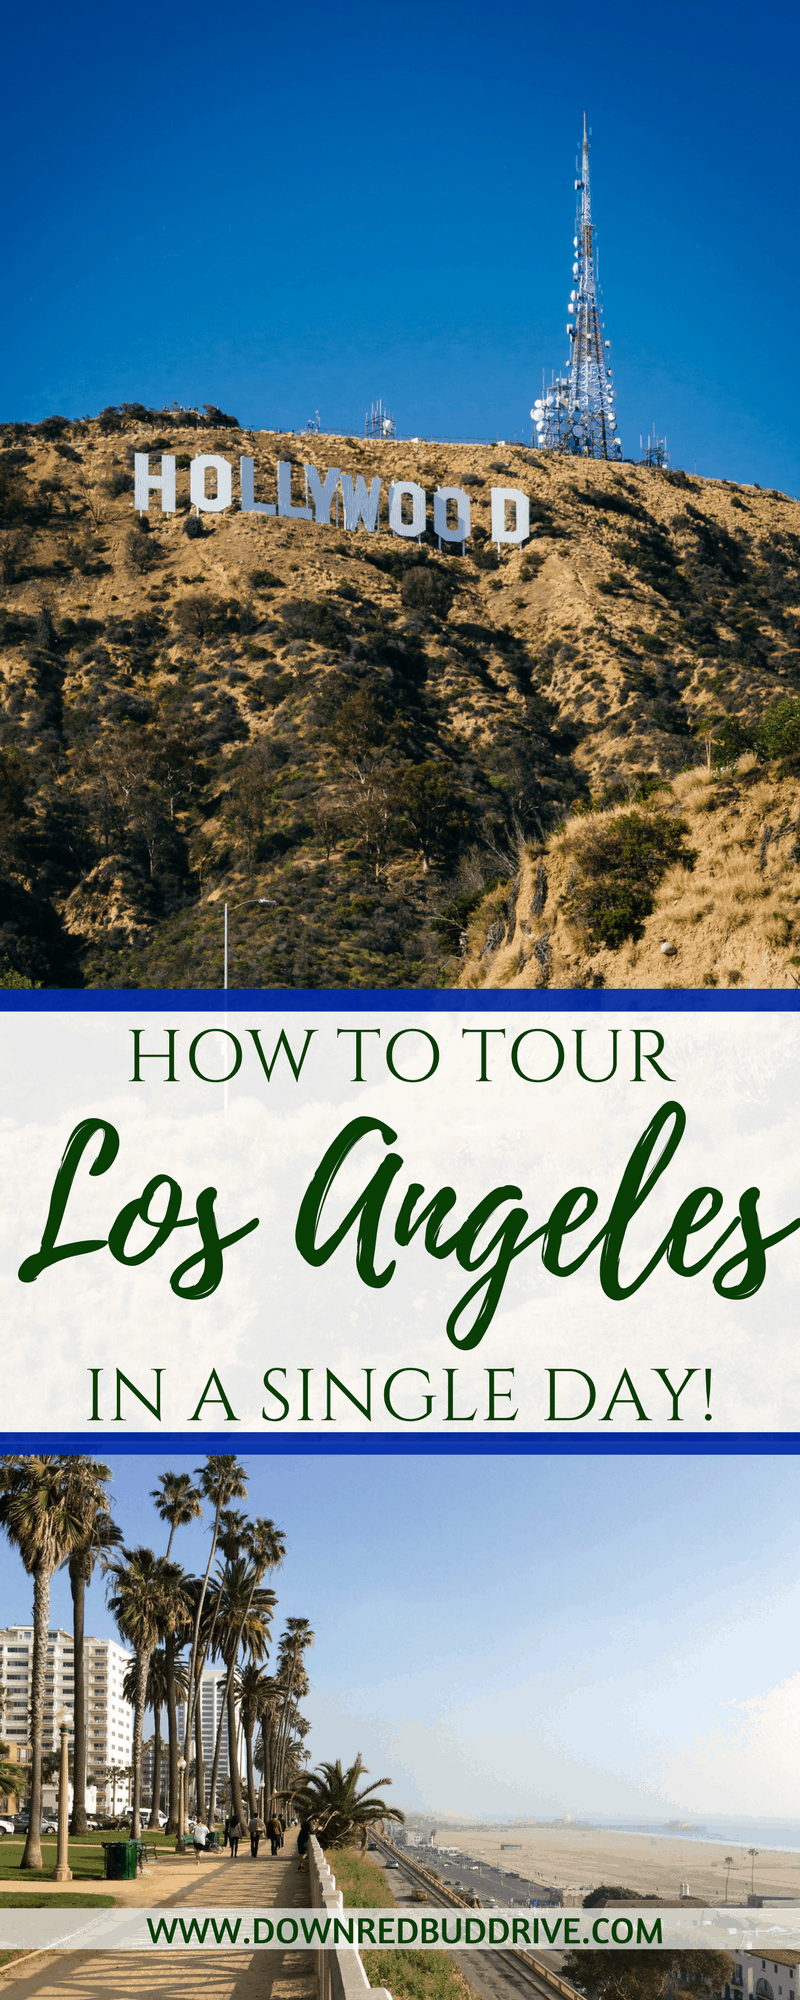 Tour Los Angeles | Los Angeles Travel | LA in a Day | Things to do in Los Angeles | Santa Monica | Hollywood Travel | Things to do in Hollywood | Hollywood Sign | Best Hollywood Tips | Hollywood Tourism | Down Redbud Drive #hollywood #LosAngeles #californiatravel #familytravel